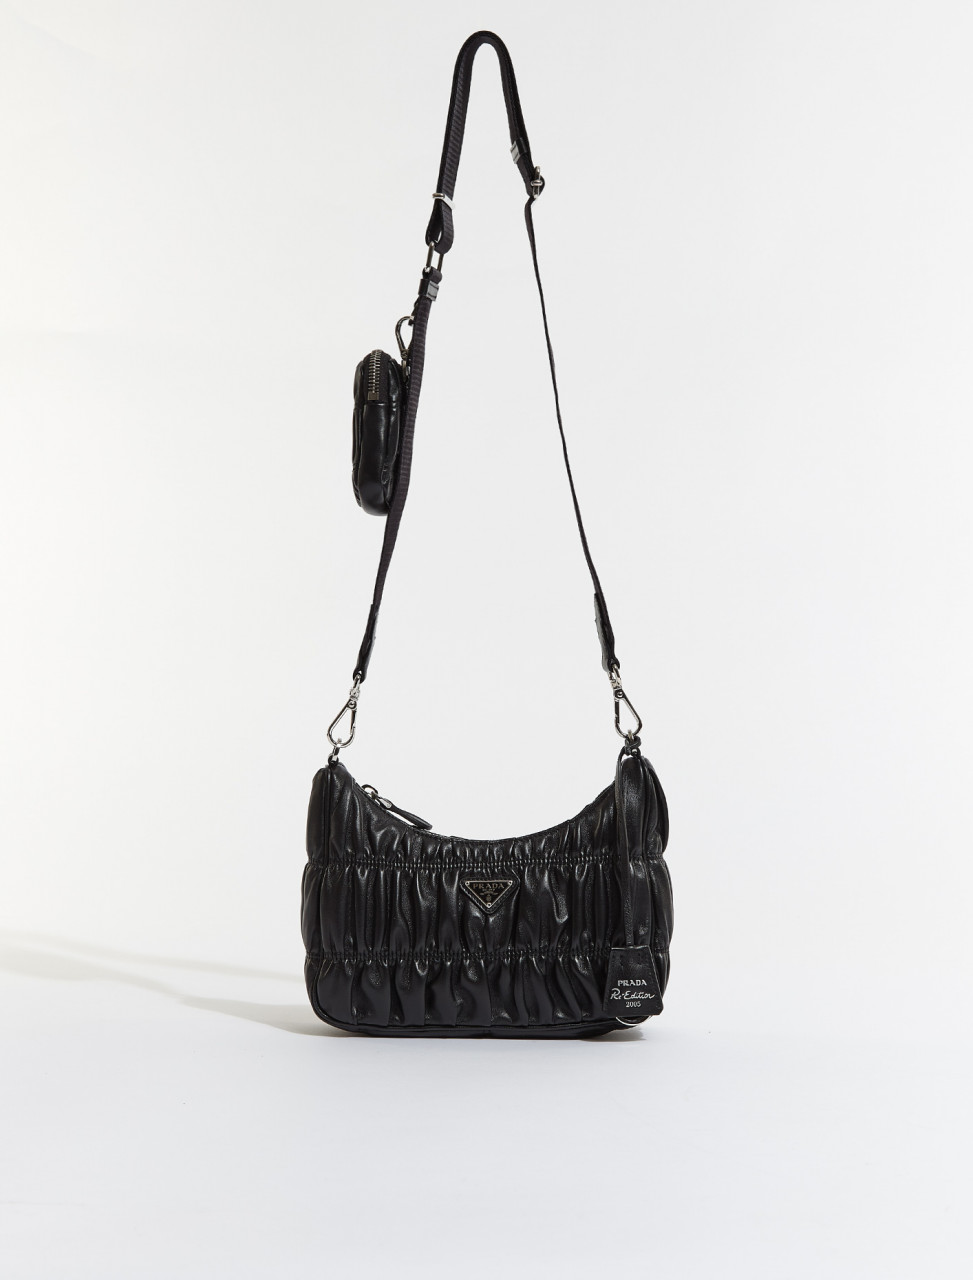 1BH204-F0002 PRADA RE EDITION 2005 NAPPA GAUFRÉ BAG IN BLACK